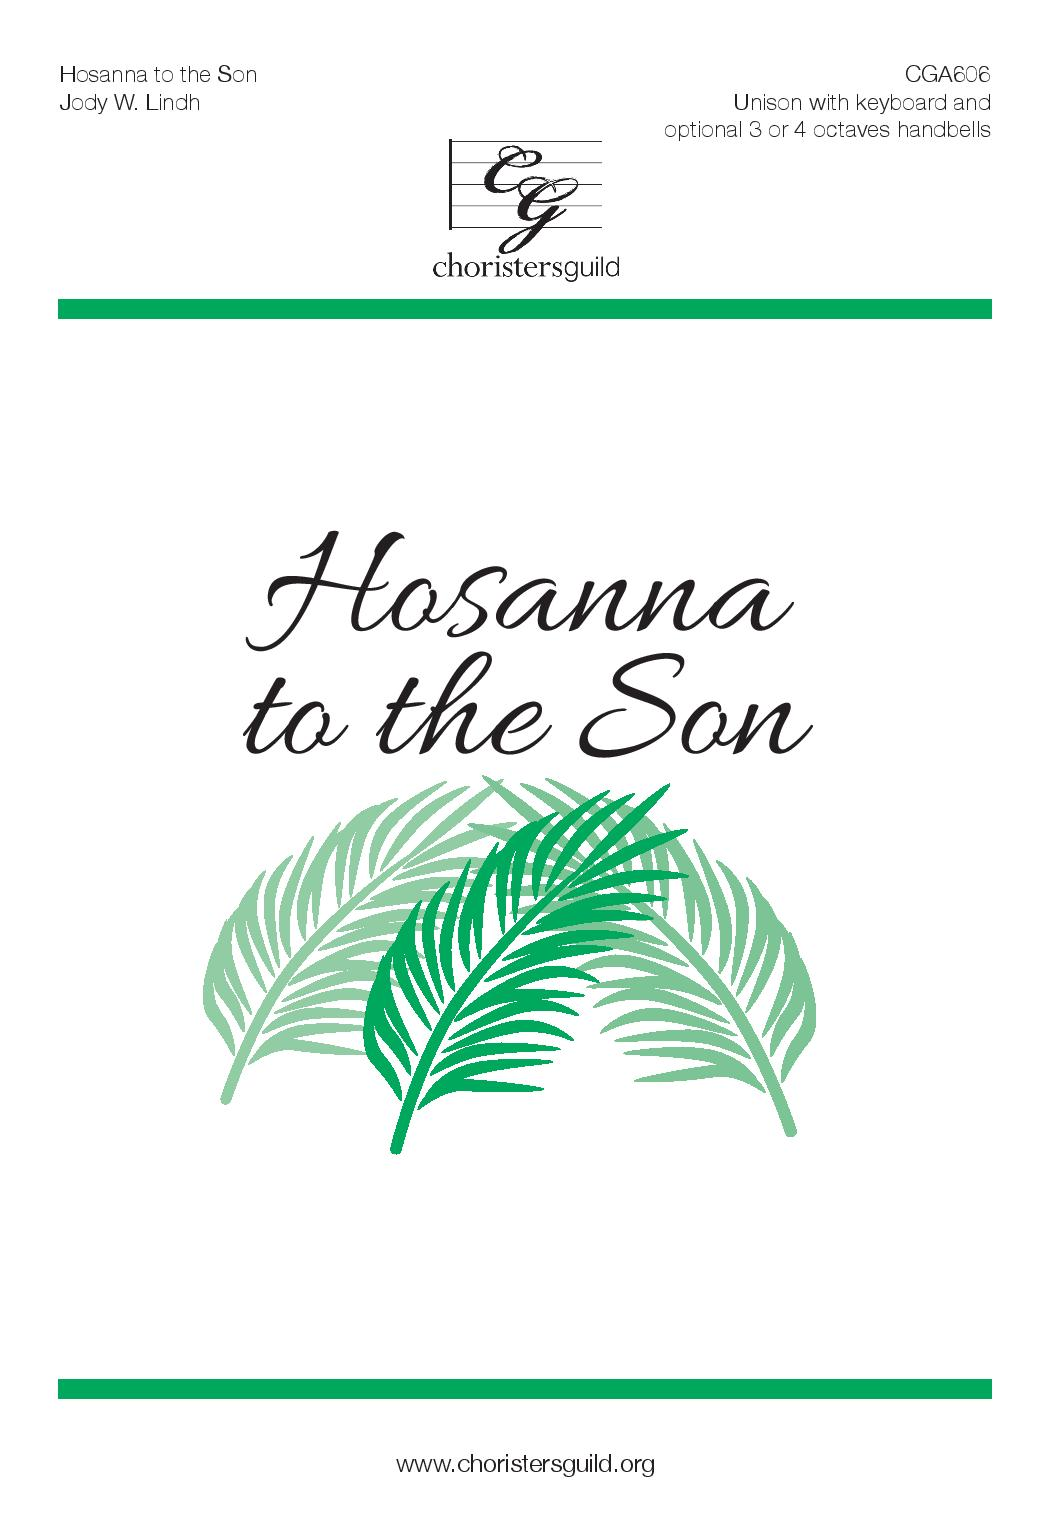 Hosanna to the Son